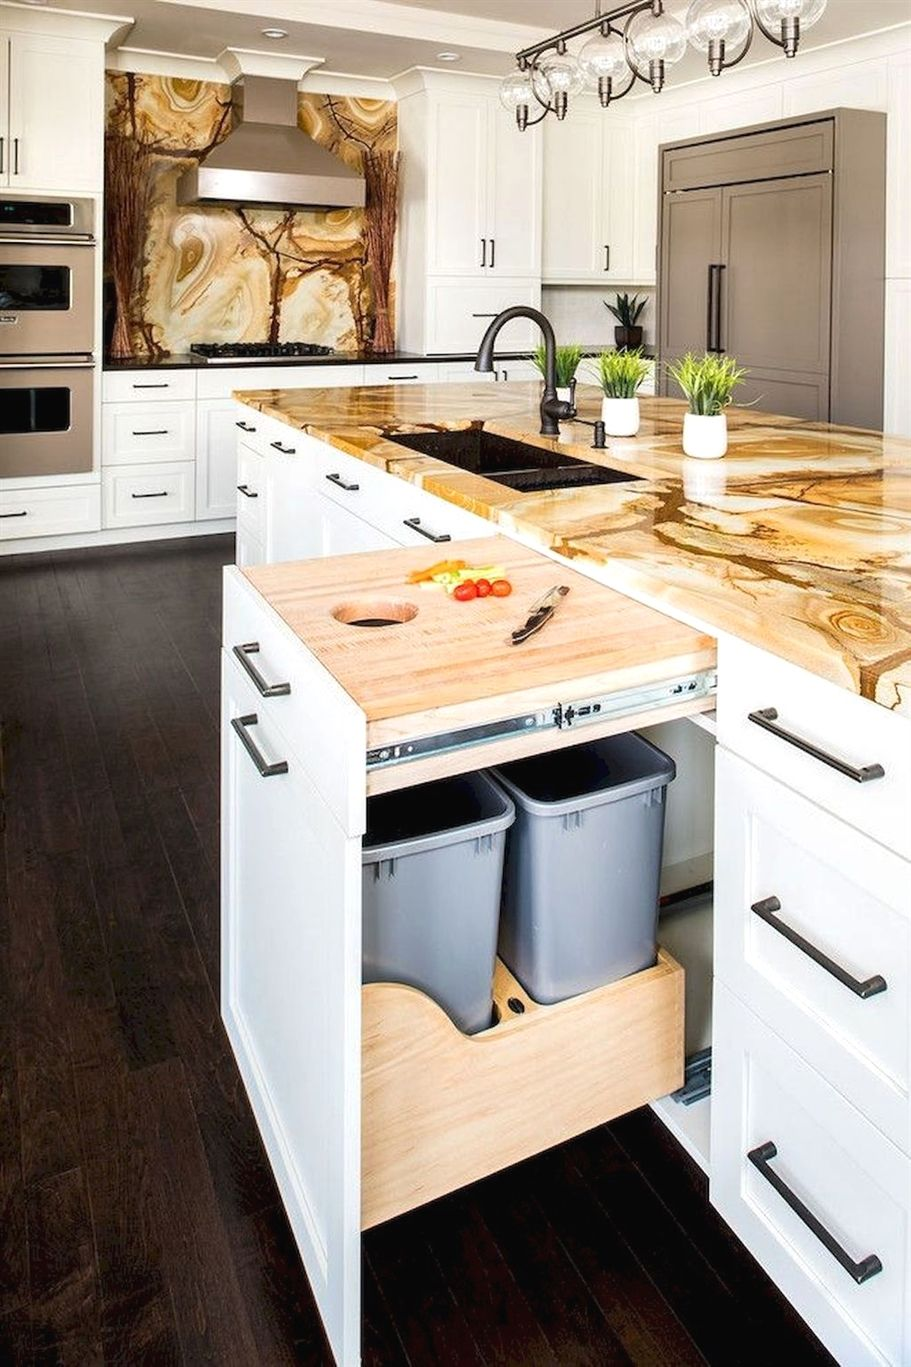 kitchenInteriorDesign | ideas for the new home | Kitchen ... on kitchen ideas for small kitchens with island, kitchen room remodel ideas, wood top kitchen countertop ideas, granite kitchen remodel ideas, contemporary kitchen remodel ideas, vanity remodel ideas, kitchen ideas with light wood cabinets, diy wood countertops kitchen ideas, popular white kitchen remodel ideas, fence remodel ideas, large kitchen remodel ideas, kitchen countertop remodel ideas, kitchen remodel suggestions, open floor plan kitchen living room ideas, kitchen lighting ideas for small kitchens, classic kitchen remodel ideas, refurbish kitchen cabinets ideas, chest remodel ideas, kitchen storage remodel ideas, kitchen remodeling ideas for small kitchens,